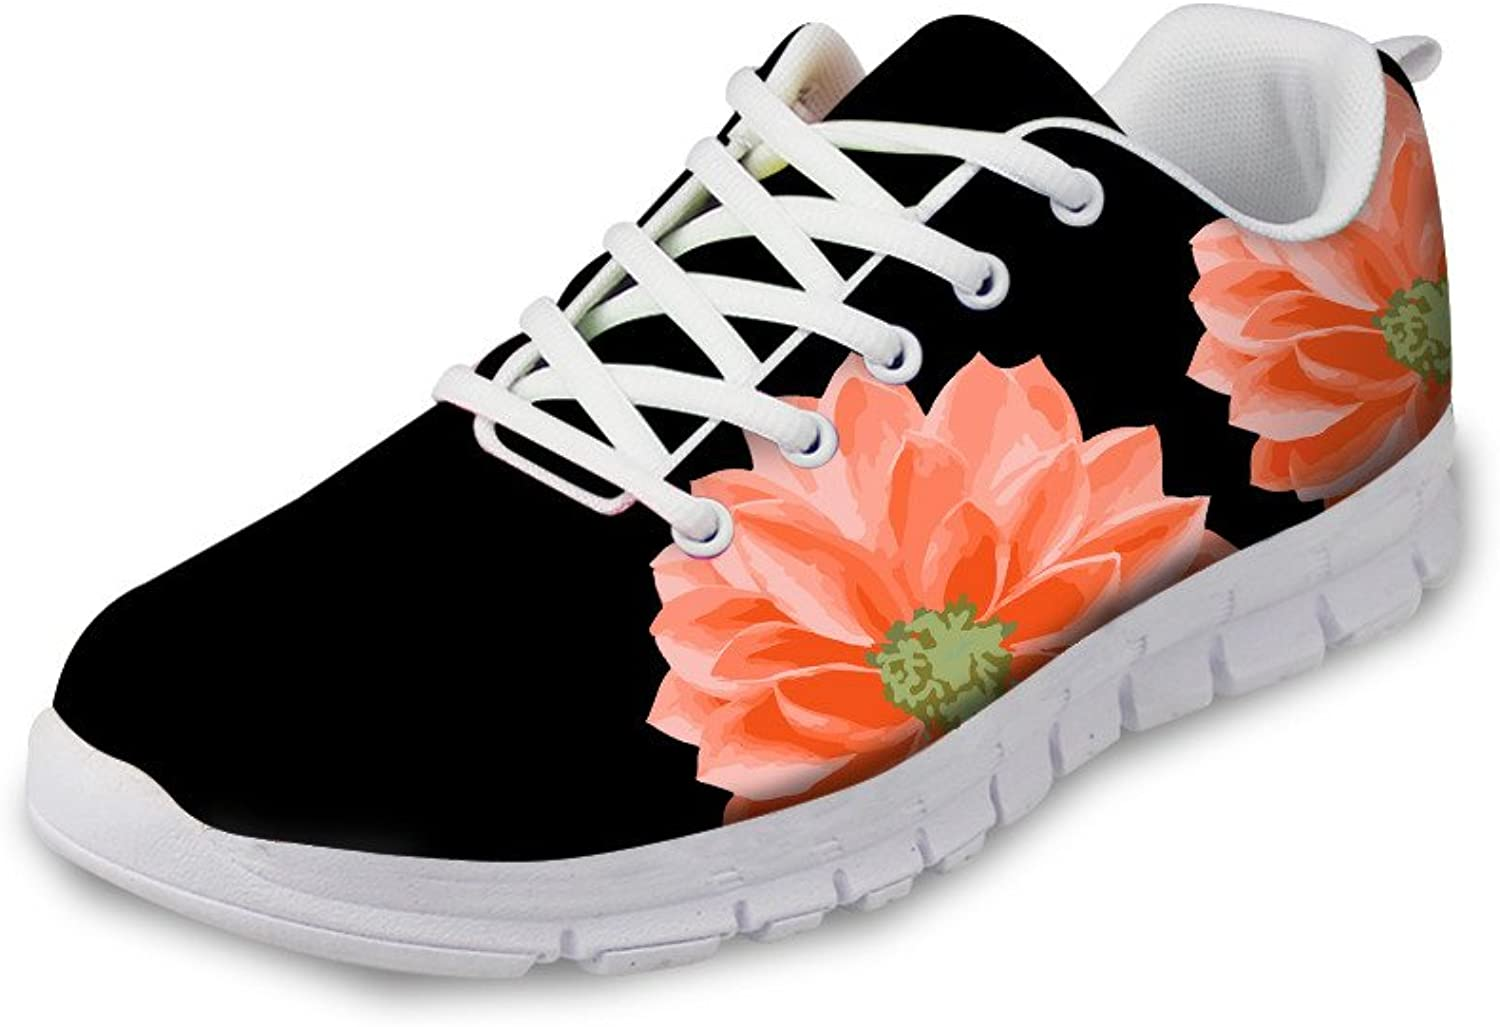 Chaqlin Black Women Road Running shoes Vintage Floral Outdoor Sport Sneaker